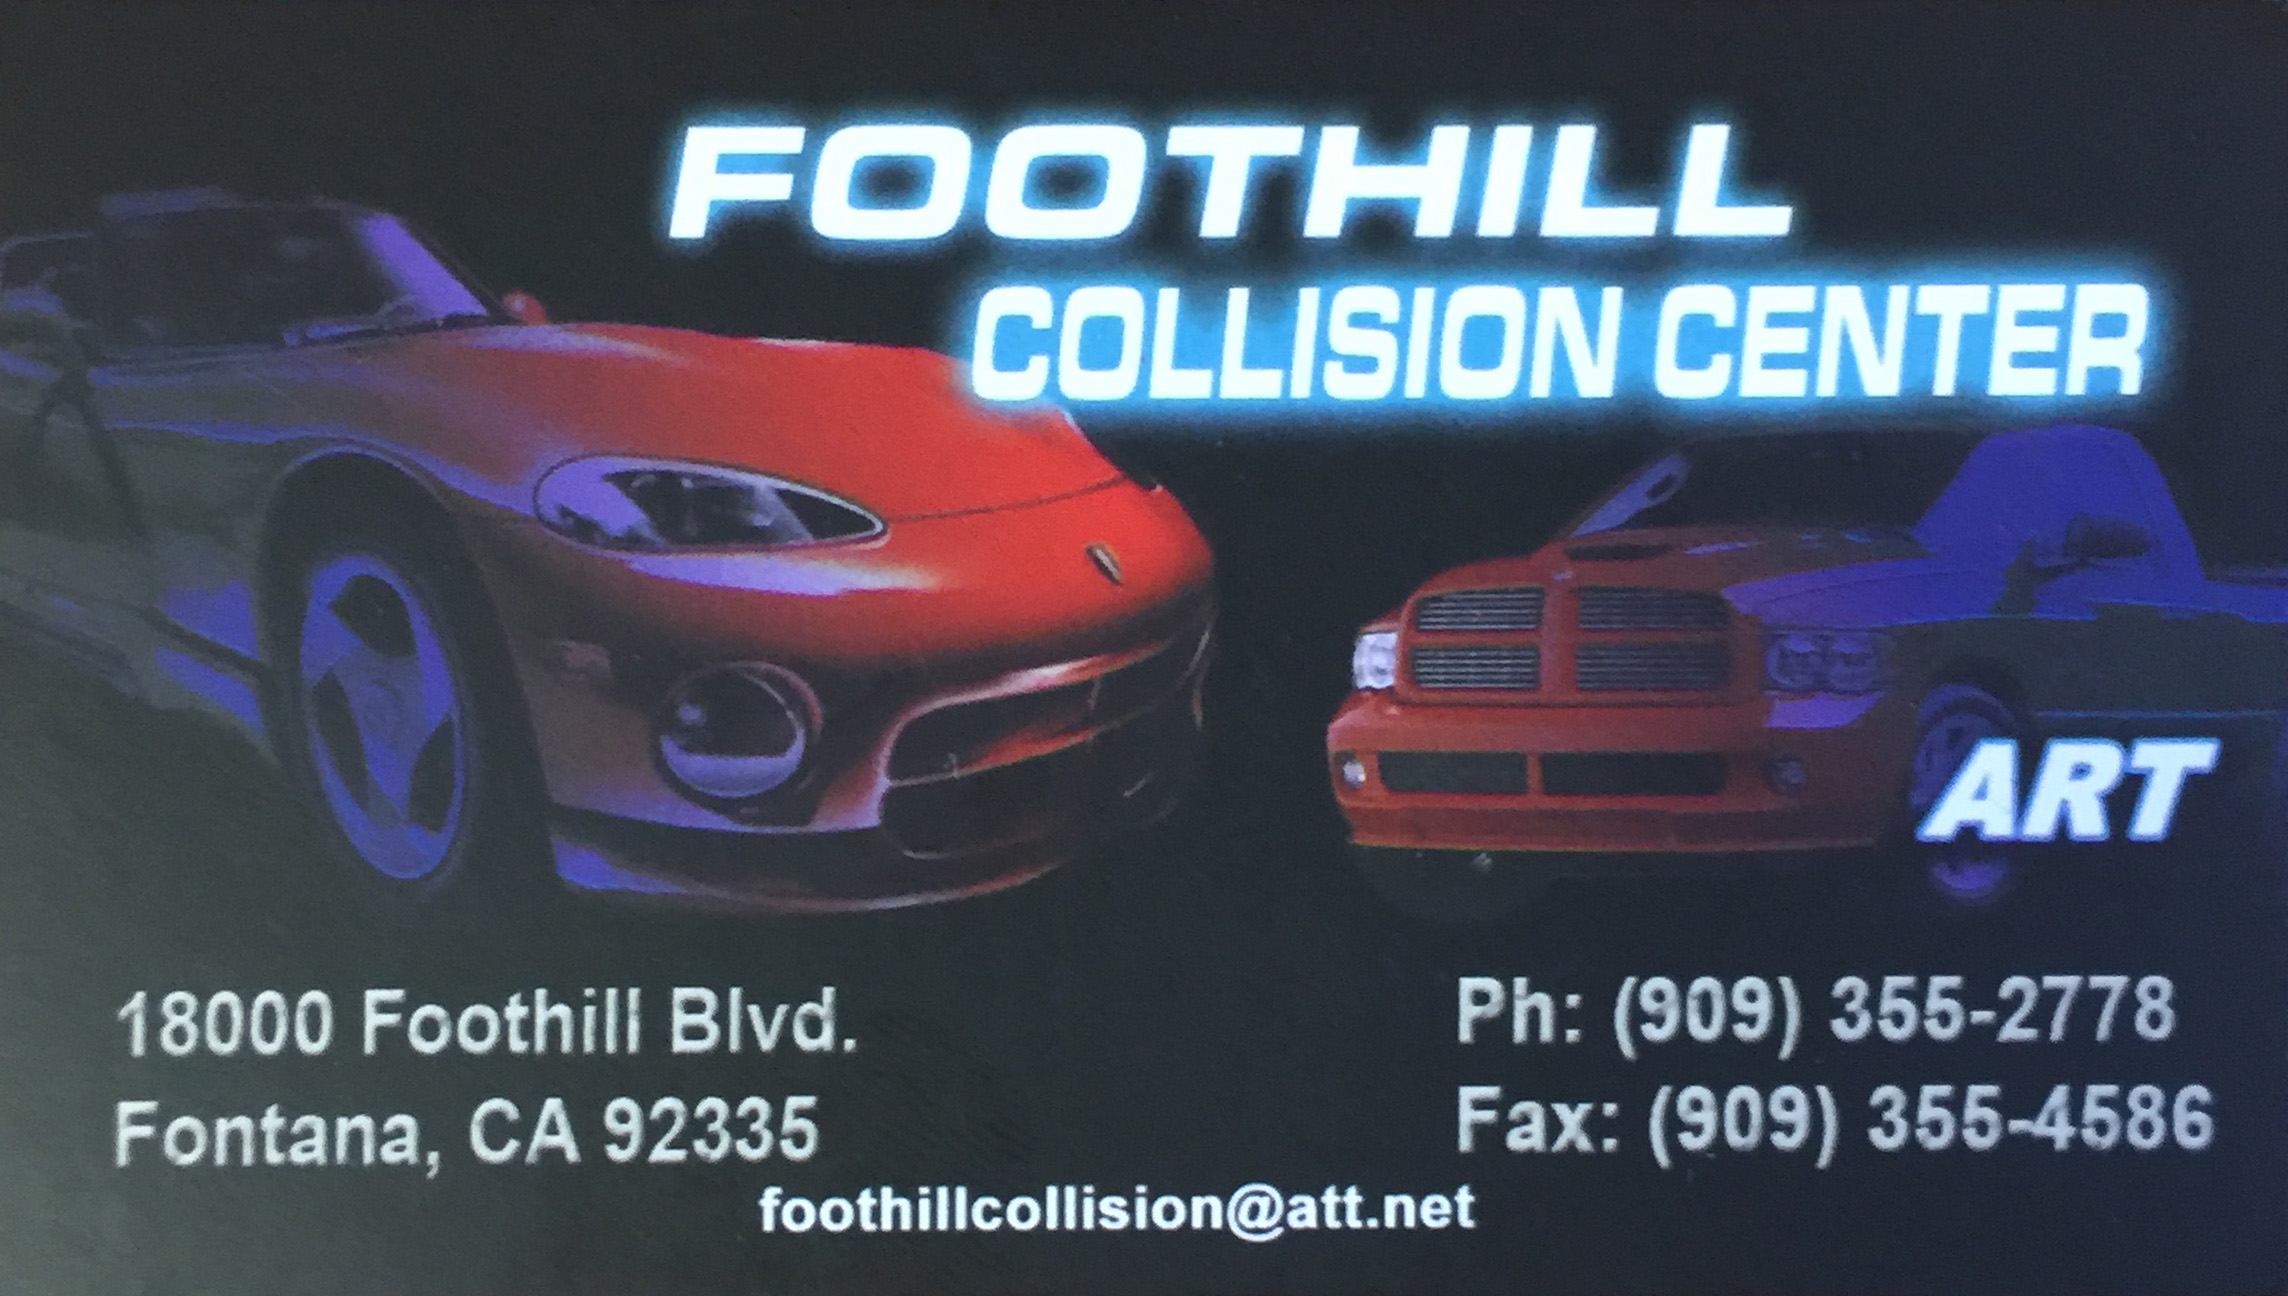 Foothill Collision Center